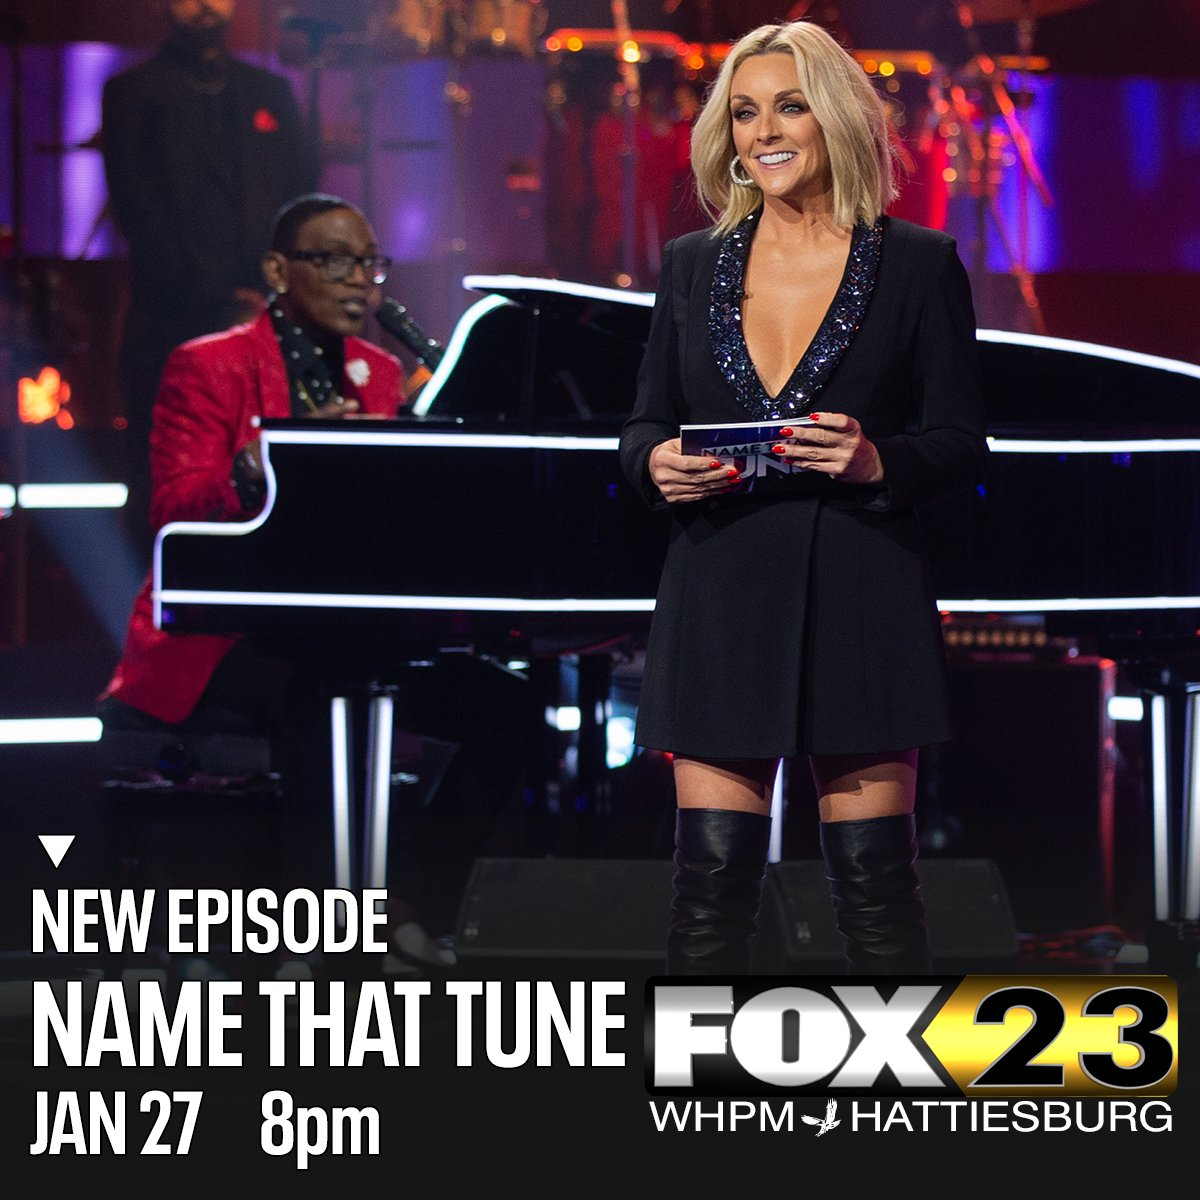 Make a note to catch Bid-A-Note on a new episode of #NameThatTune with #RandyJackson and #JaneKrakowski -- tonight at 8 on #MyFOX23 WHPM.